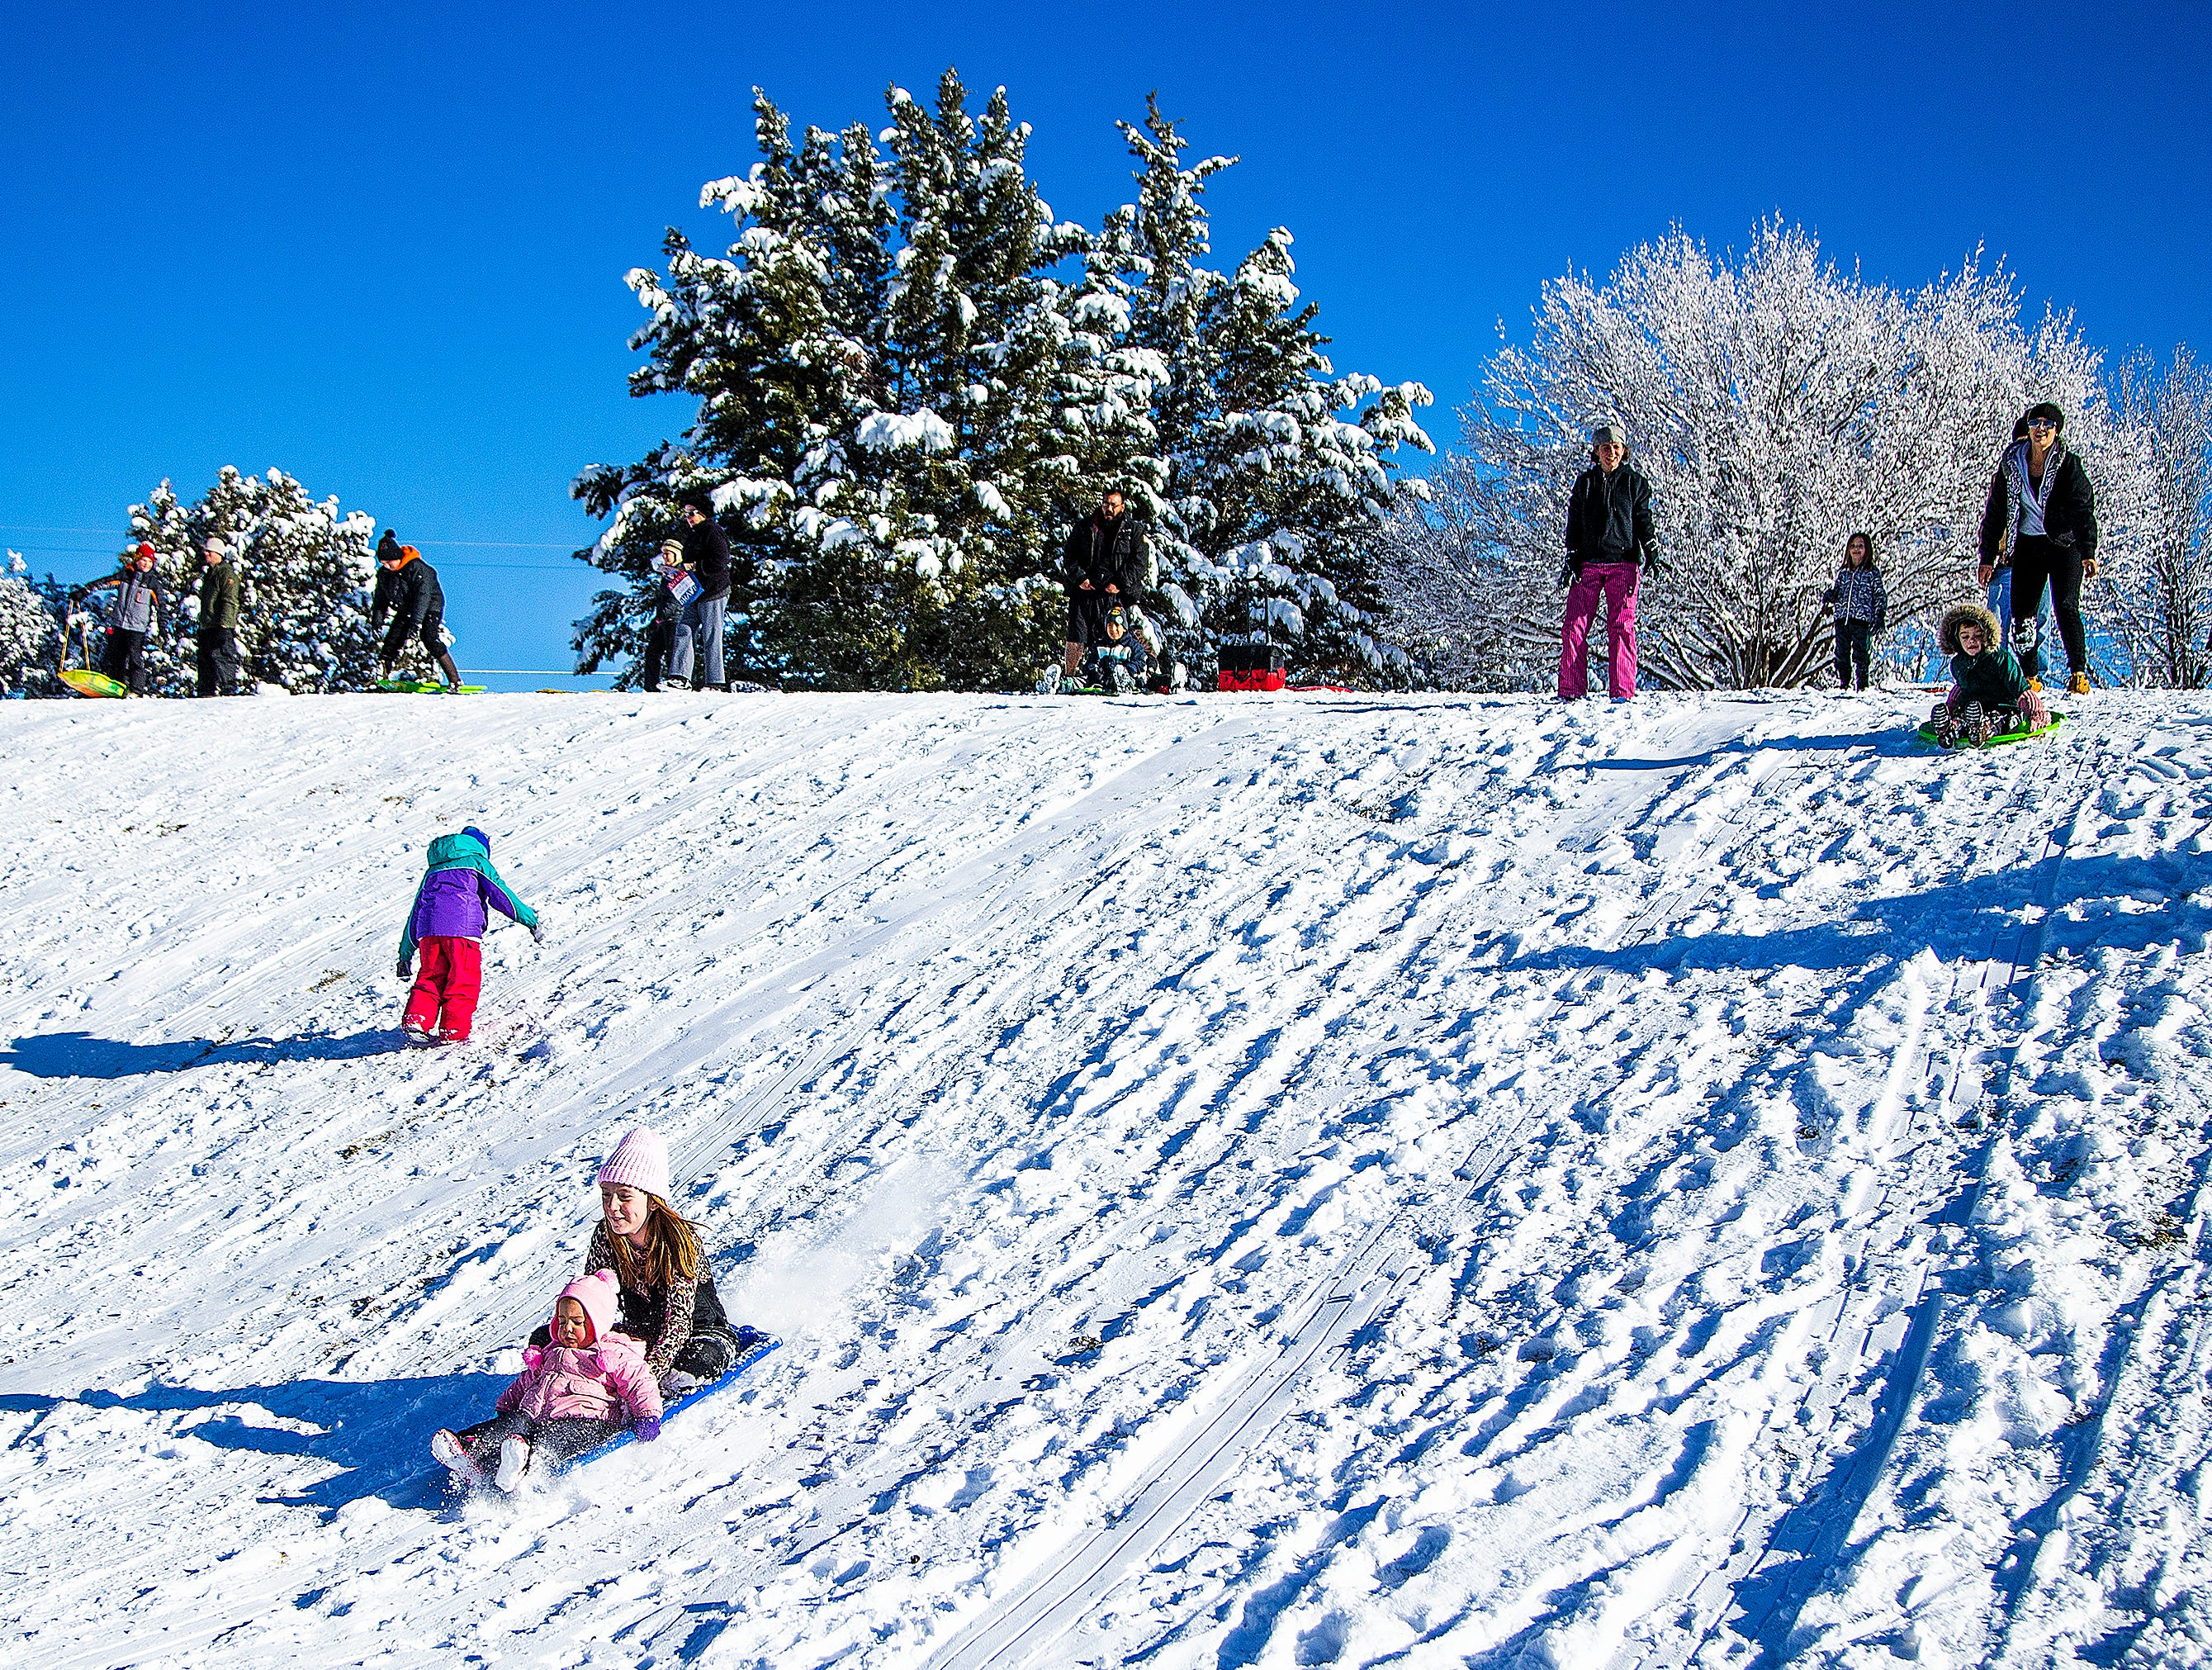 Families take advantage of fresh snowfall to slide down a hill at Green Valley Park in Payson on New Year's Day, 2019.